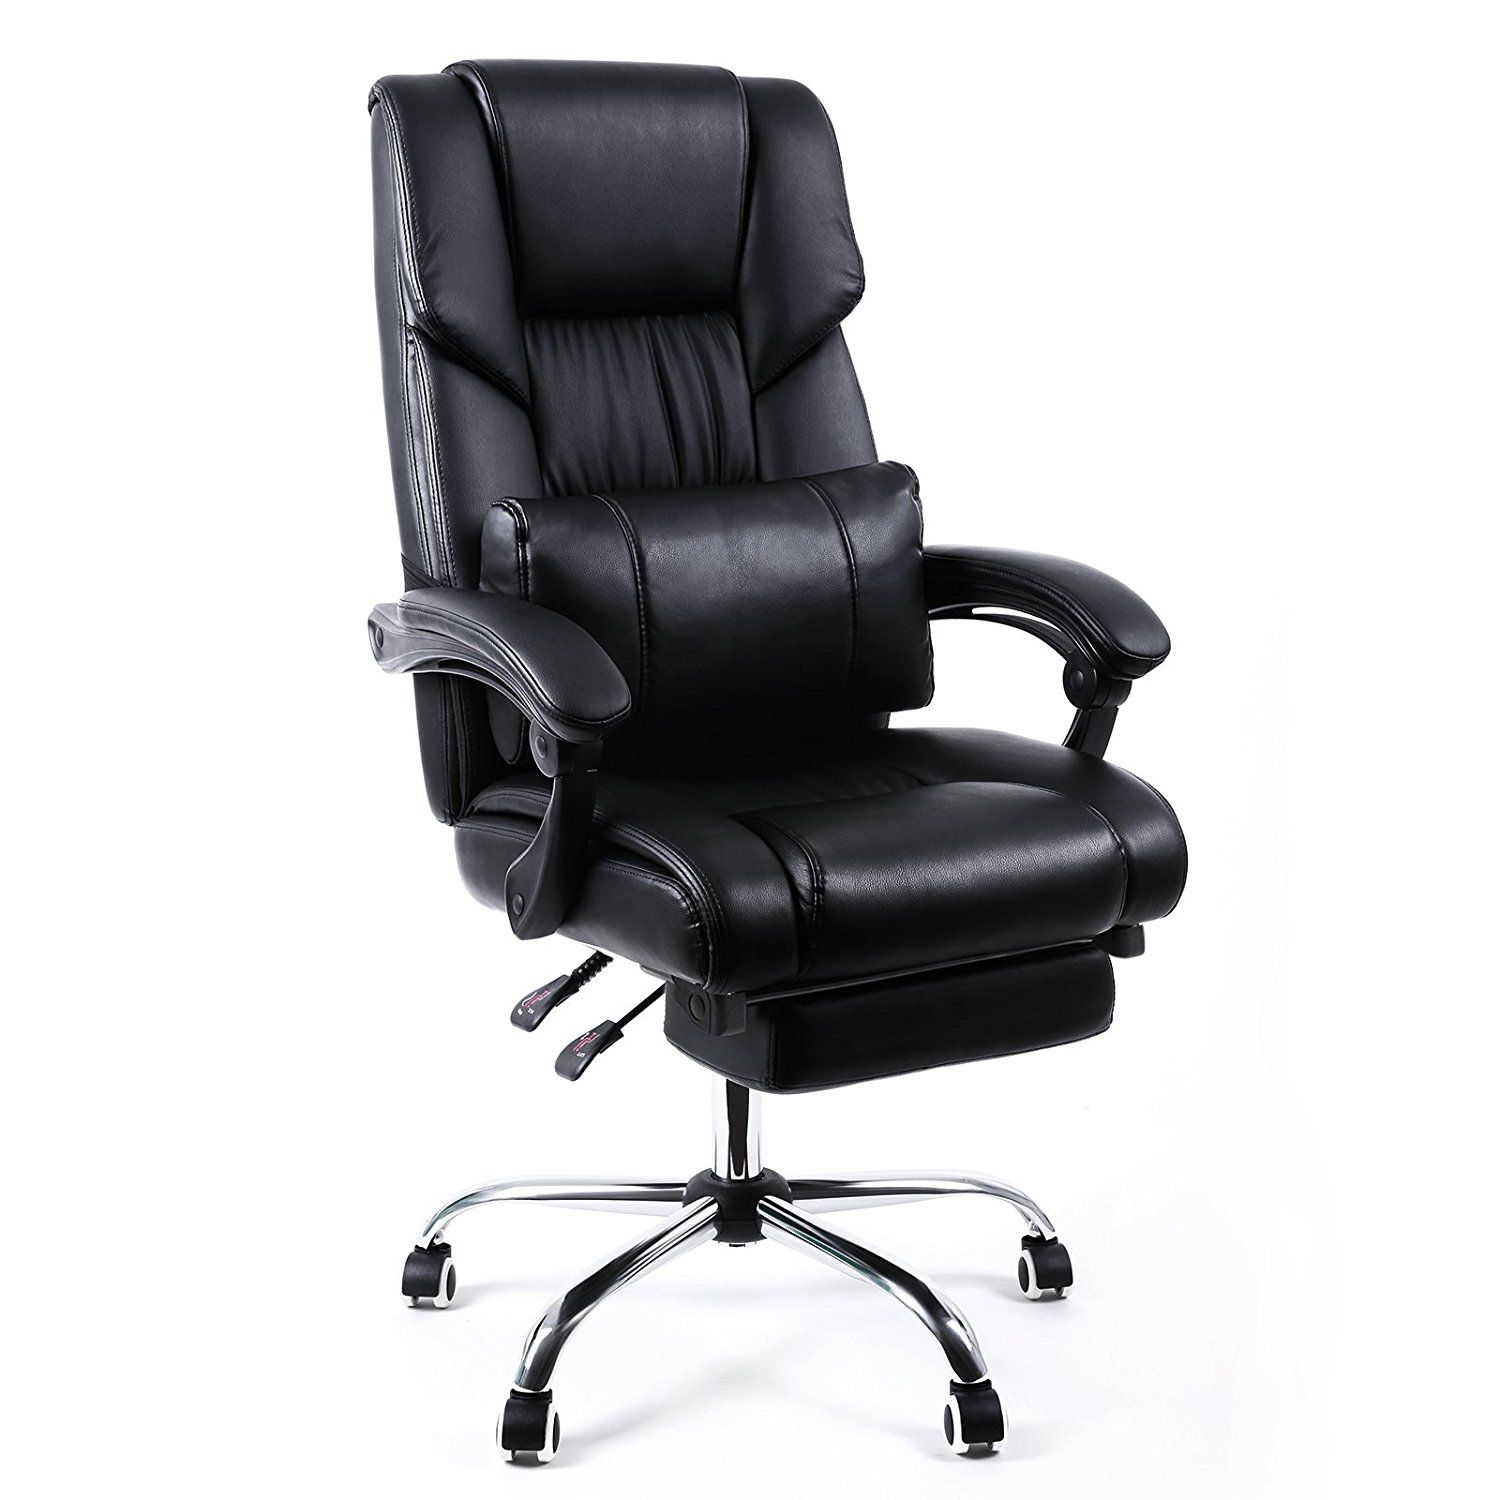 target ikea with office size footrest wheels full modern amazon without height adjustable of desk beautiful chairs chair task